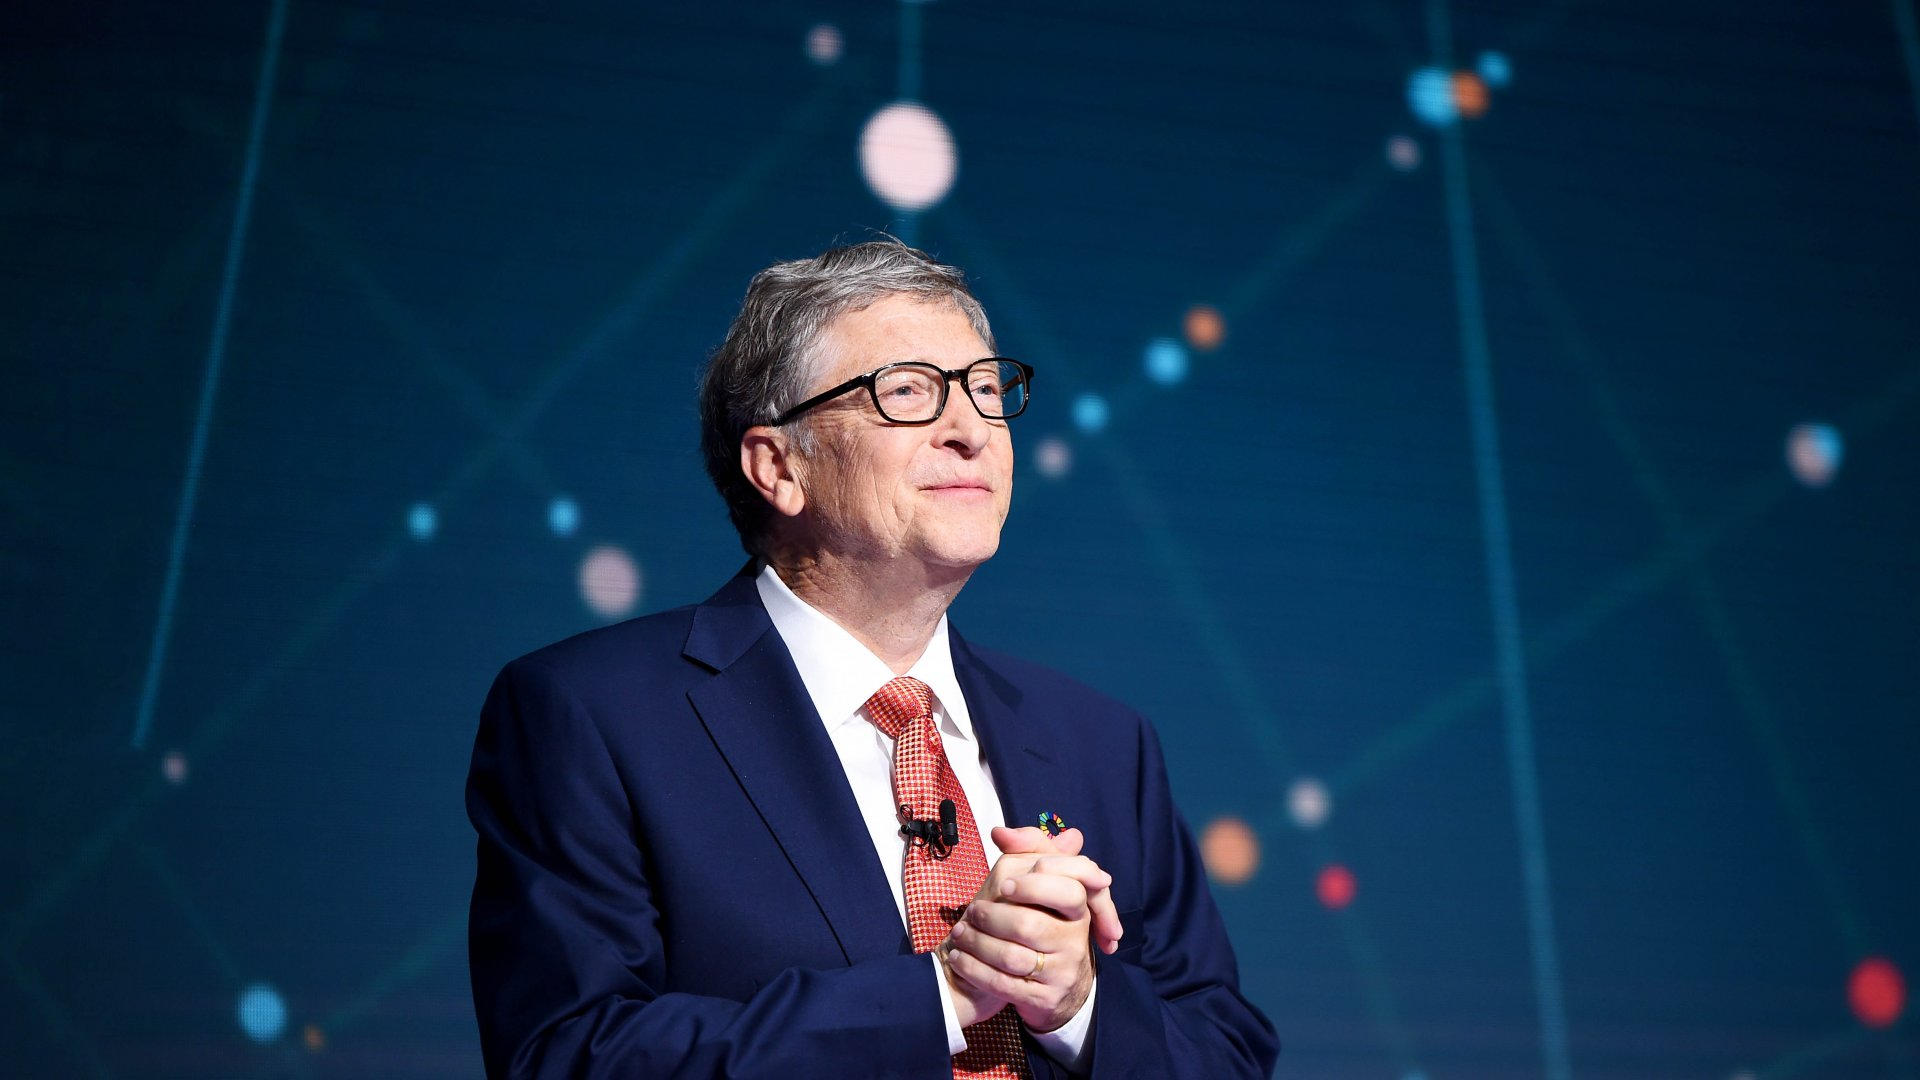 3 Things a Book on the 1918 Flu Taught Bill Gates About Leading During a Pandemic